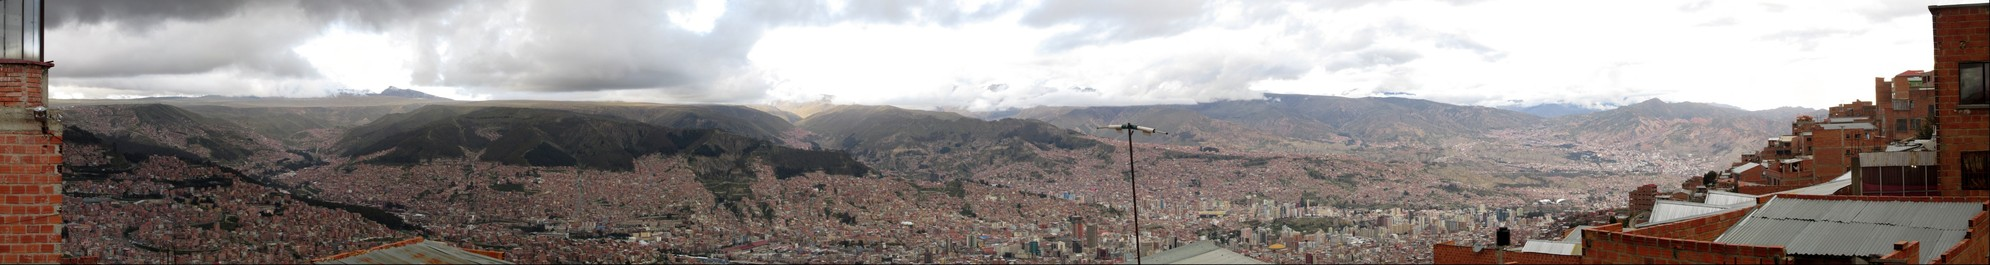 La Paz, as seen from La Ceja